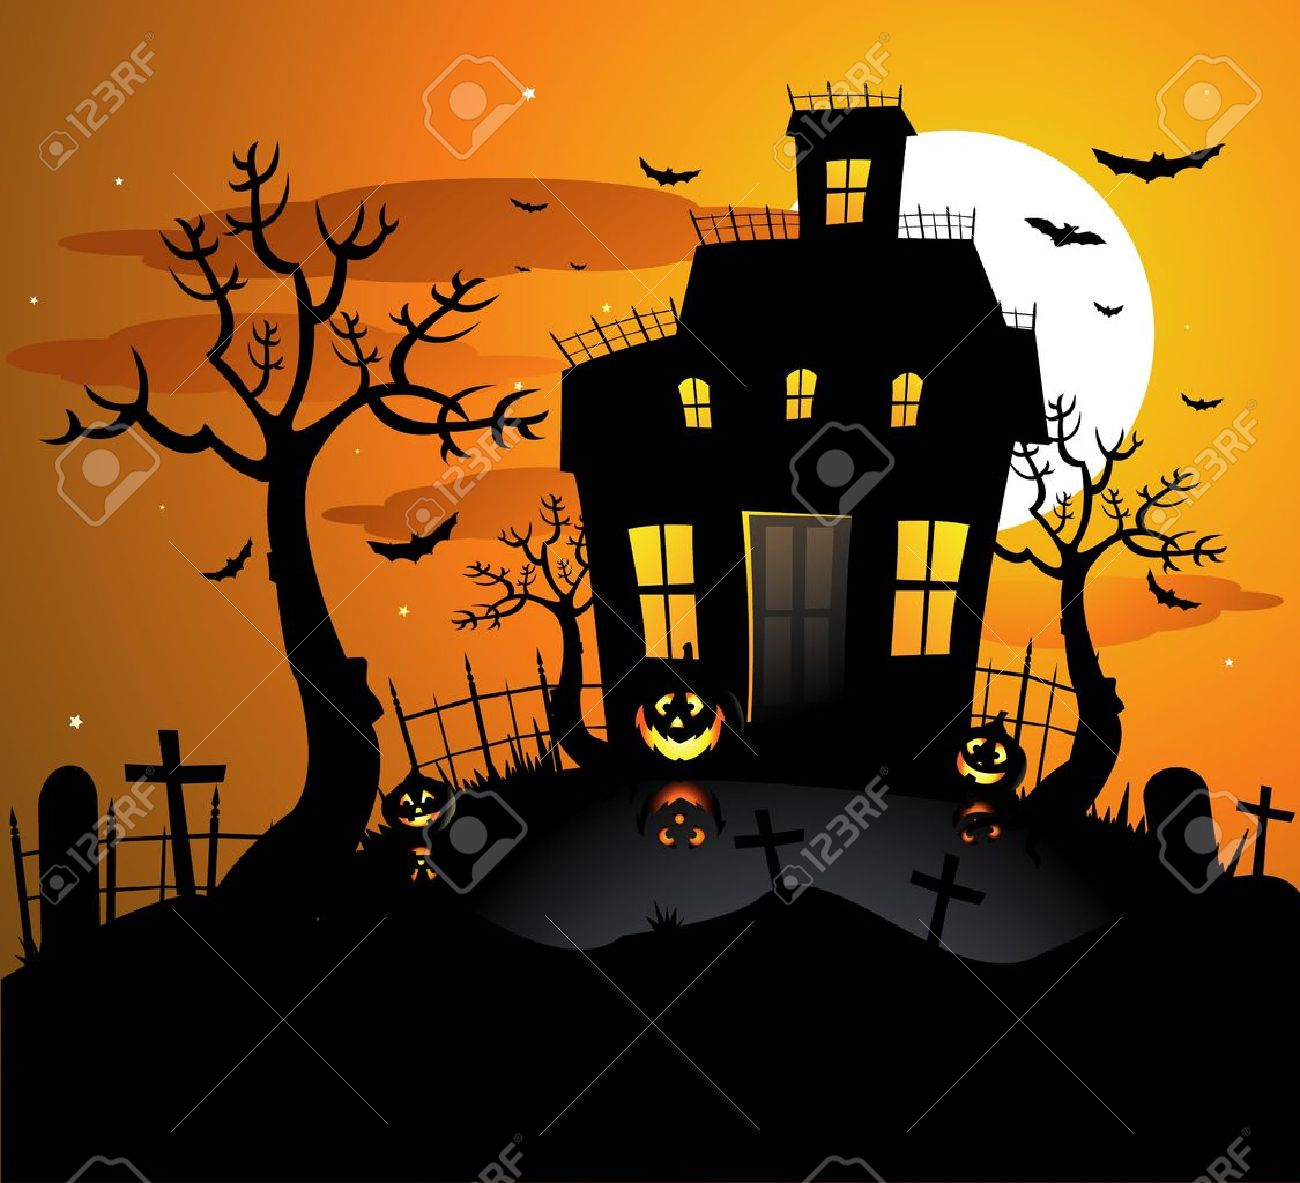 Halloween Haunted House Background Royalty Free Cliparts, Vectors ...